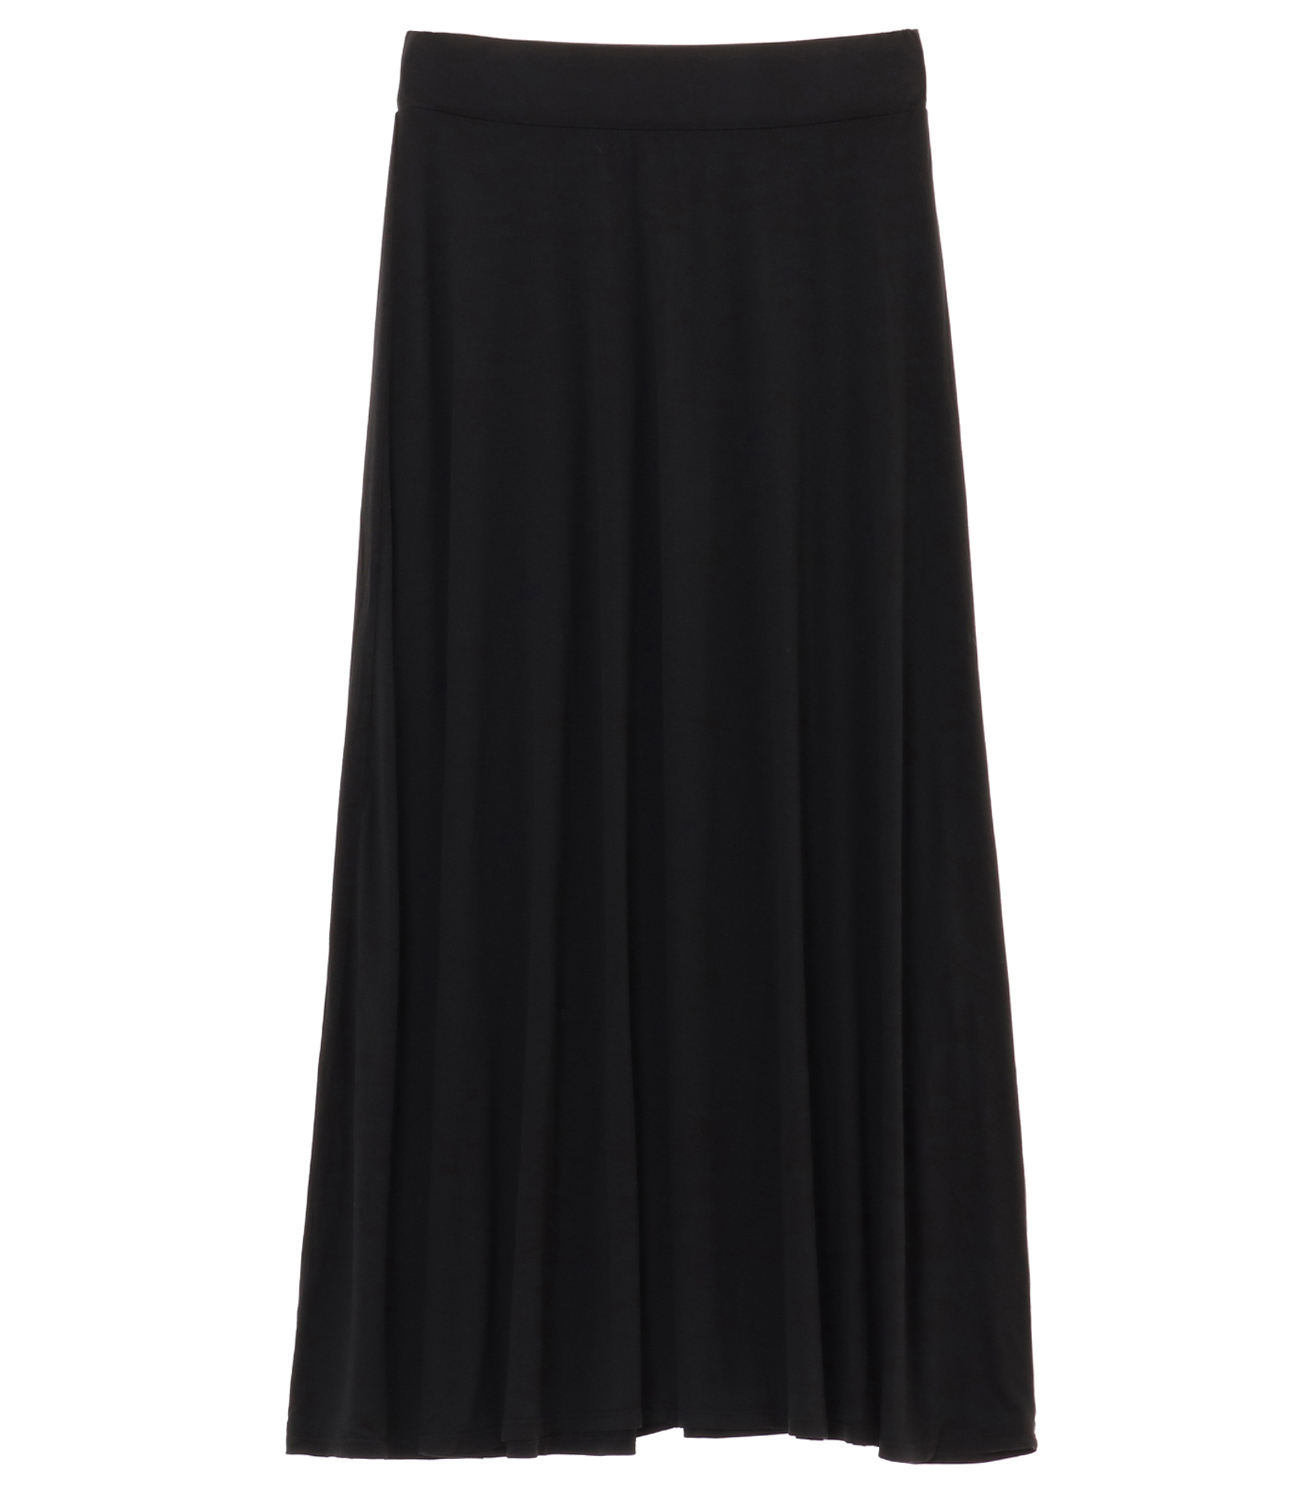 refined jersey long skirt 詳細画像 black 1